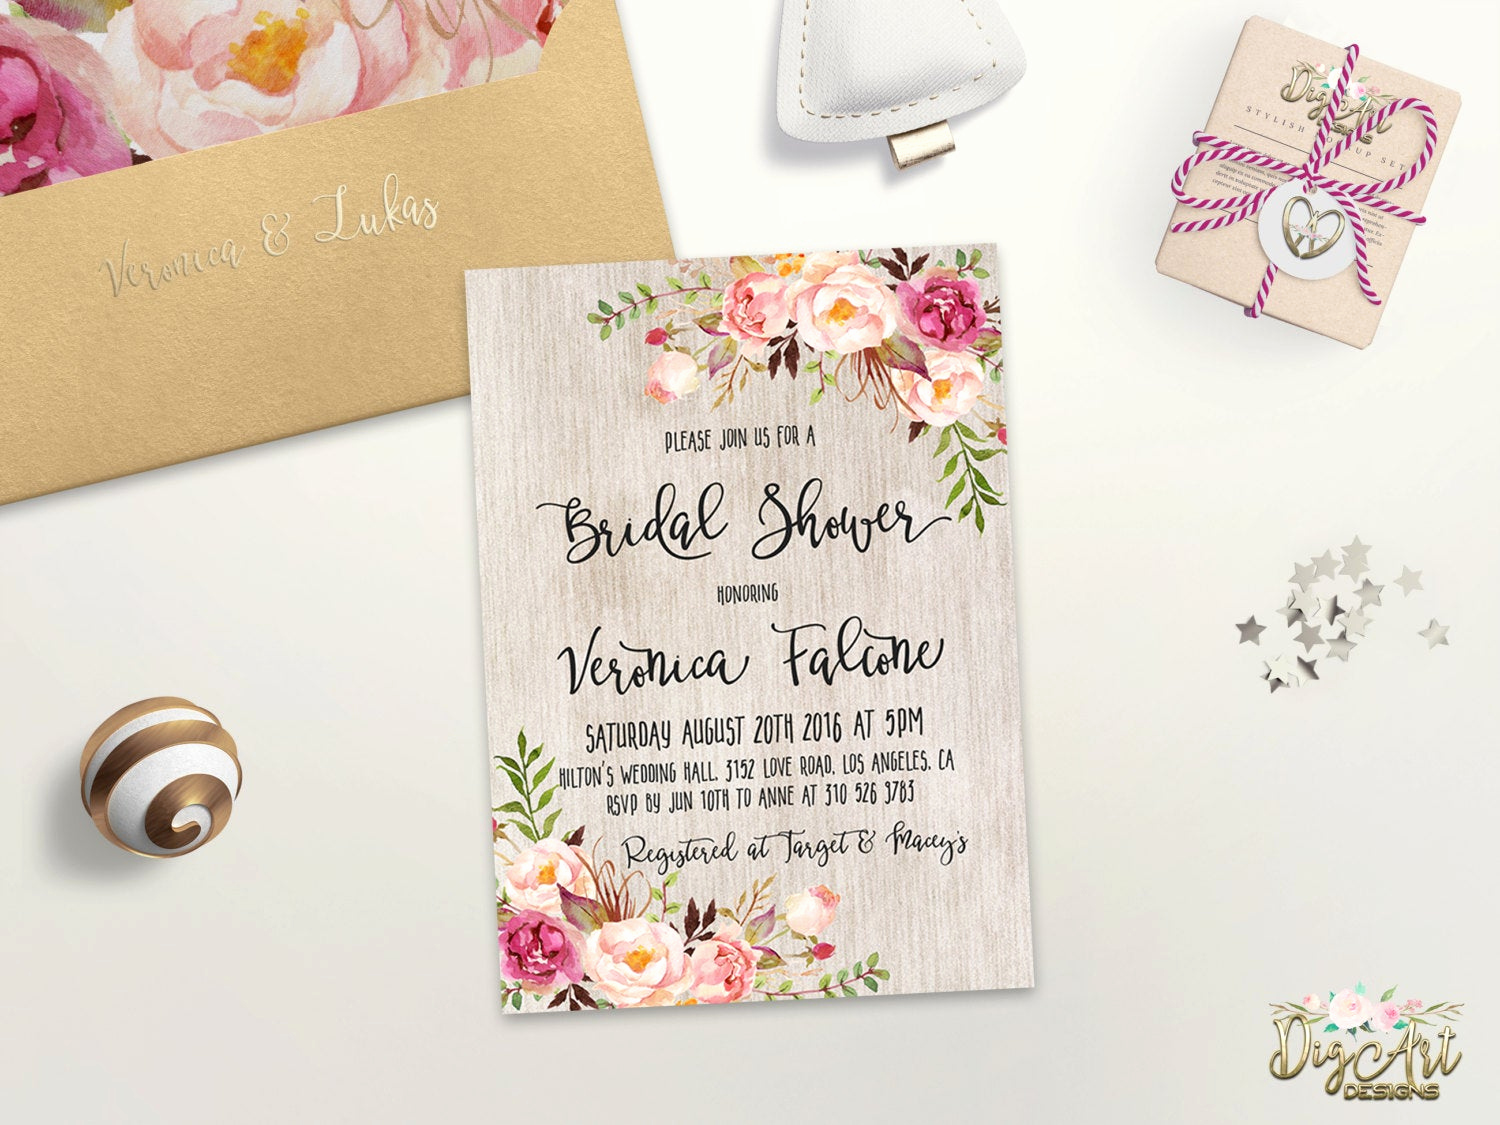 Printable Bridal Shower Invitations Awesome Floral Bridal Shower Invitation Printable or Printed Rustic